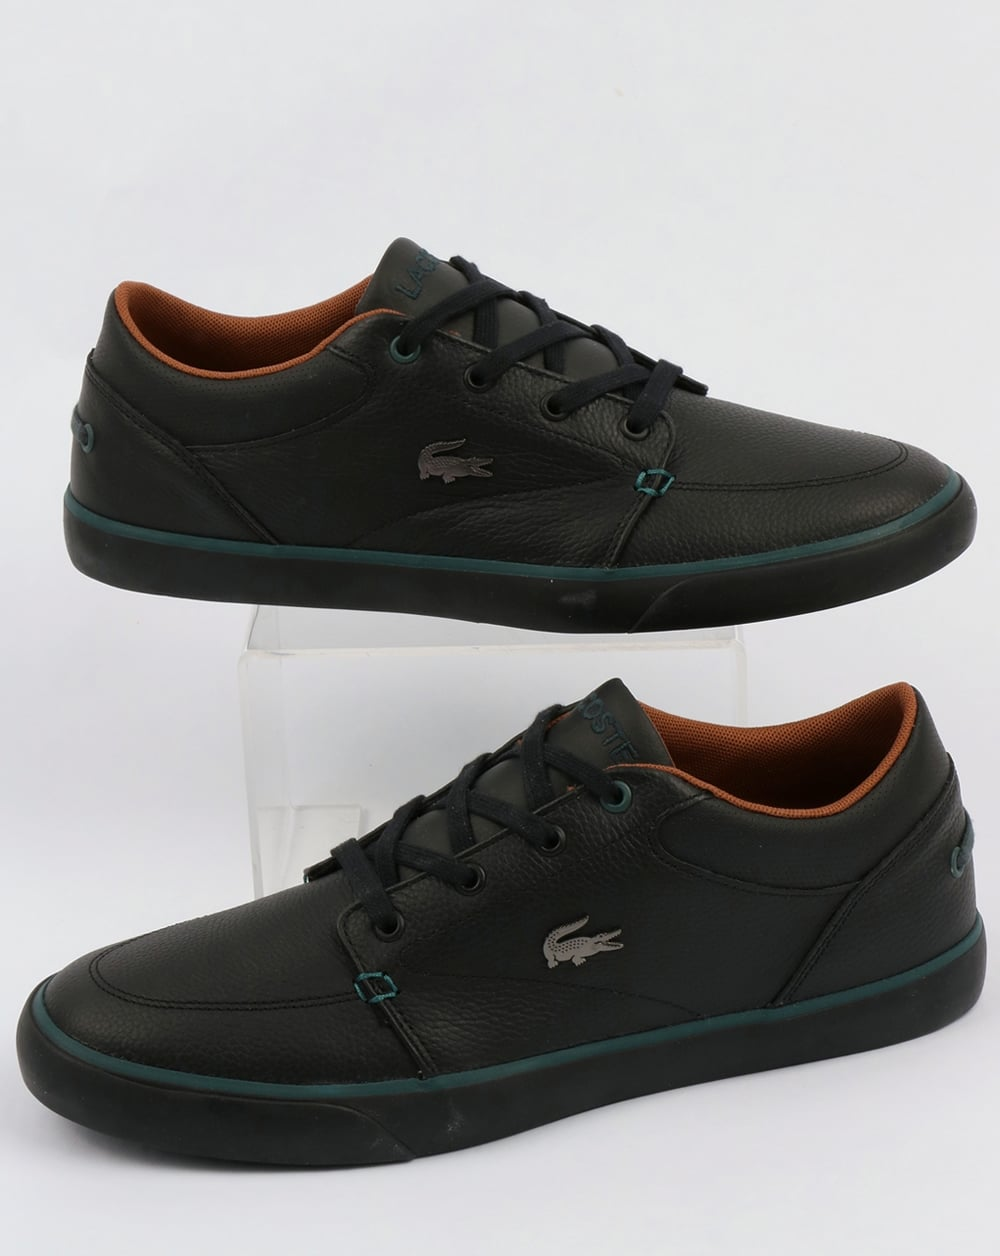 ab747449c4bc2f Lacoste Lacoste Footwear Bayliss Leather Trainers Black